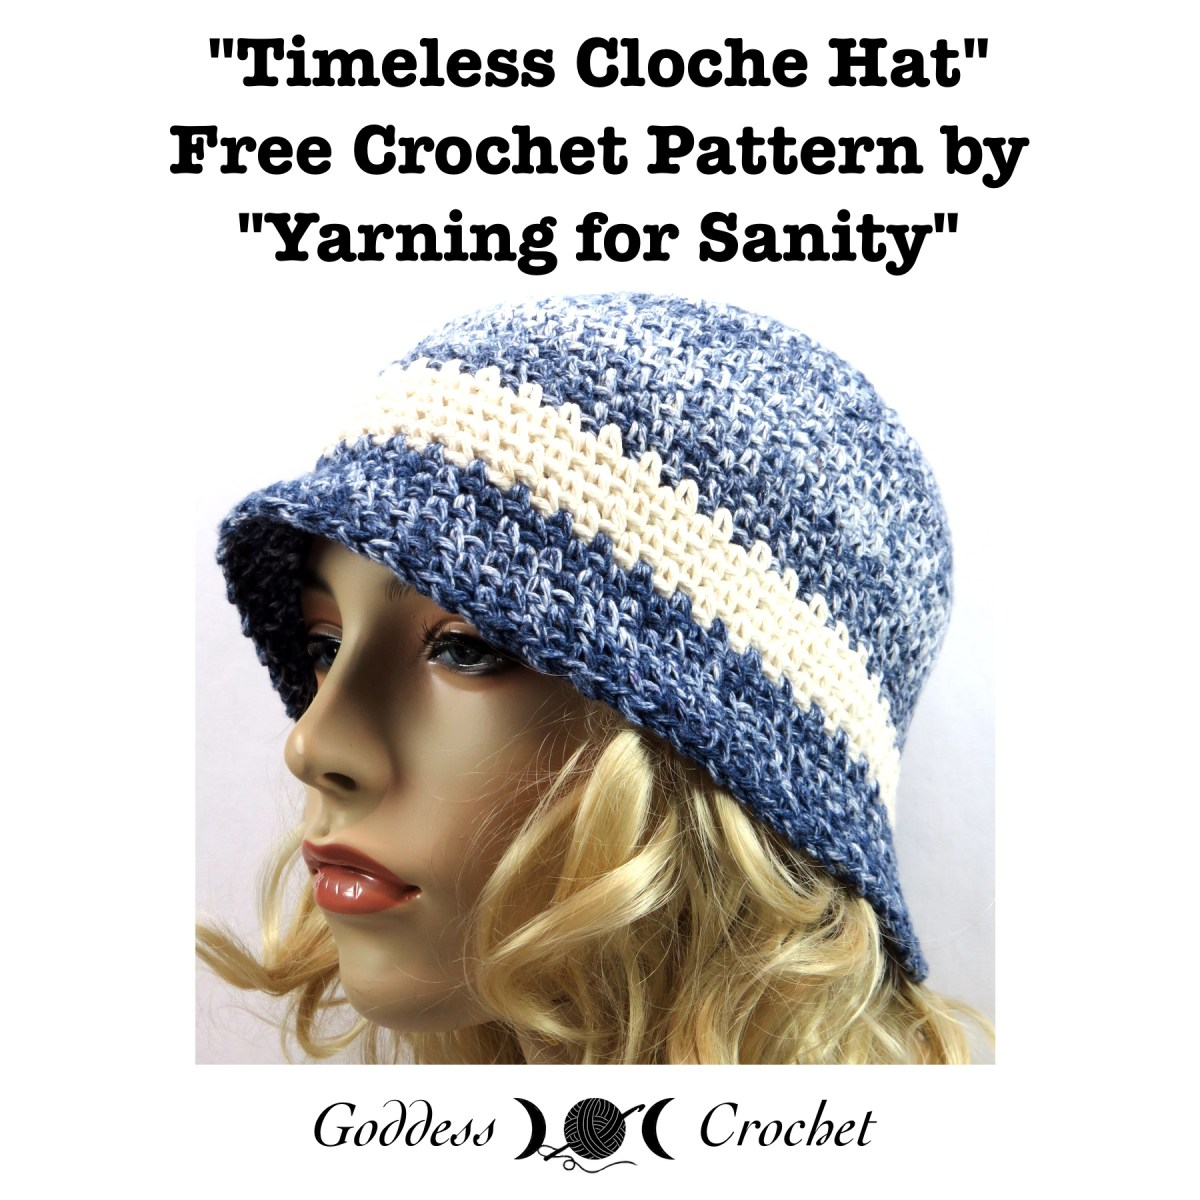 Timeless Cloche Hat Free Crochet Pattern Goddess Crochet